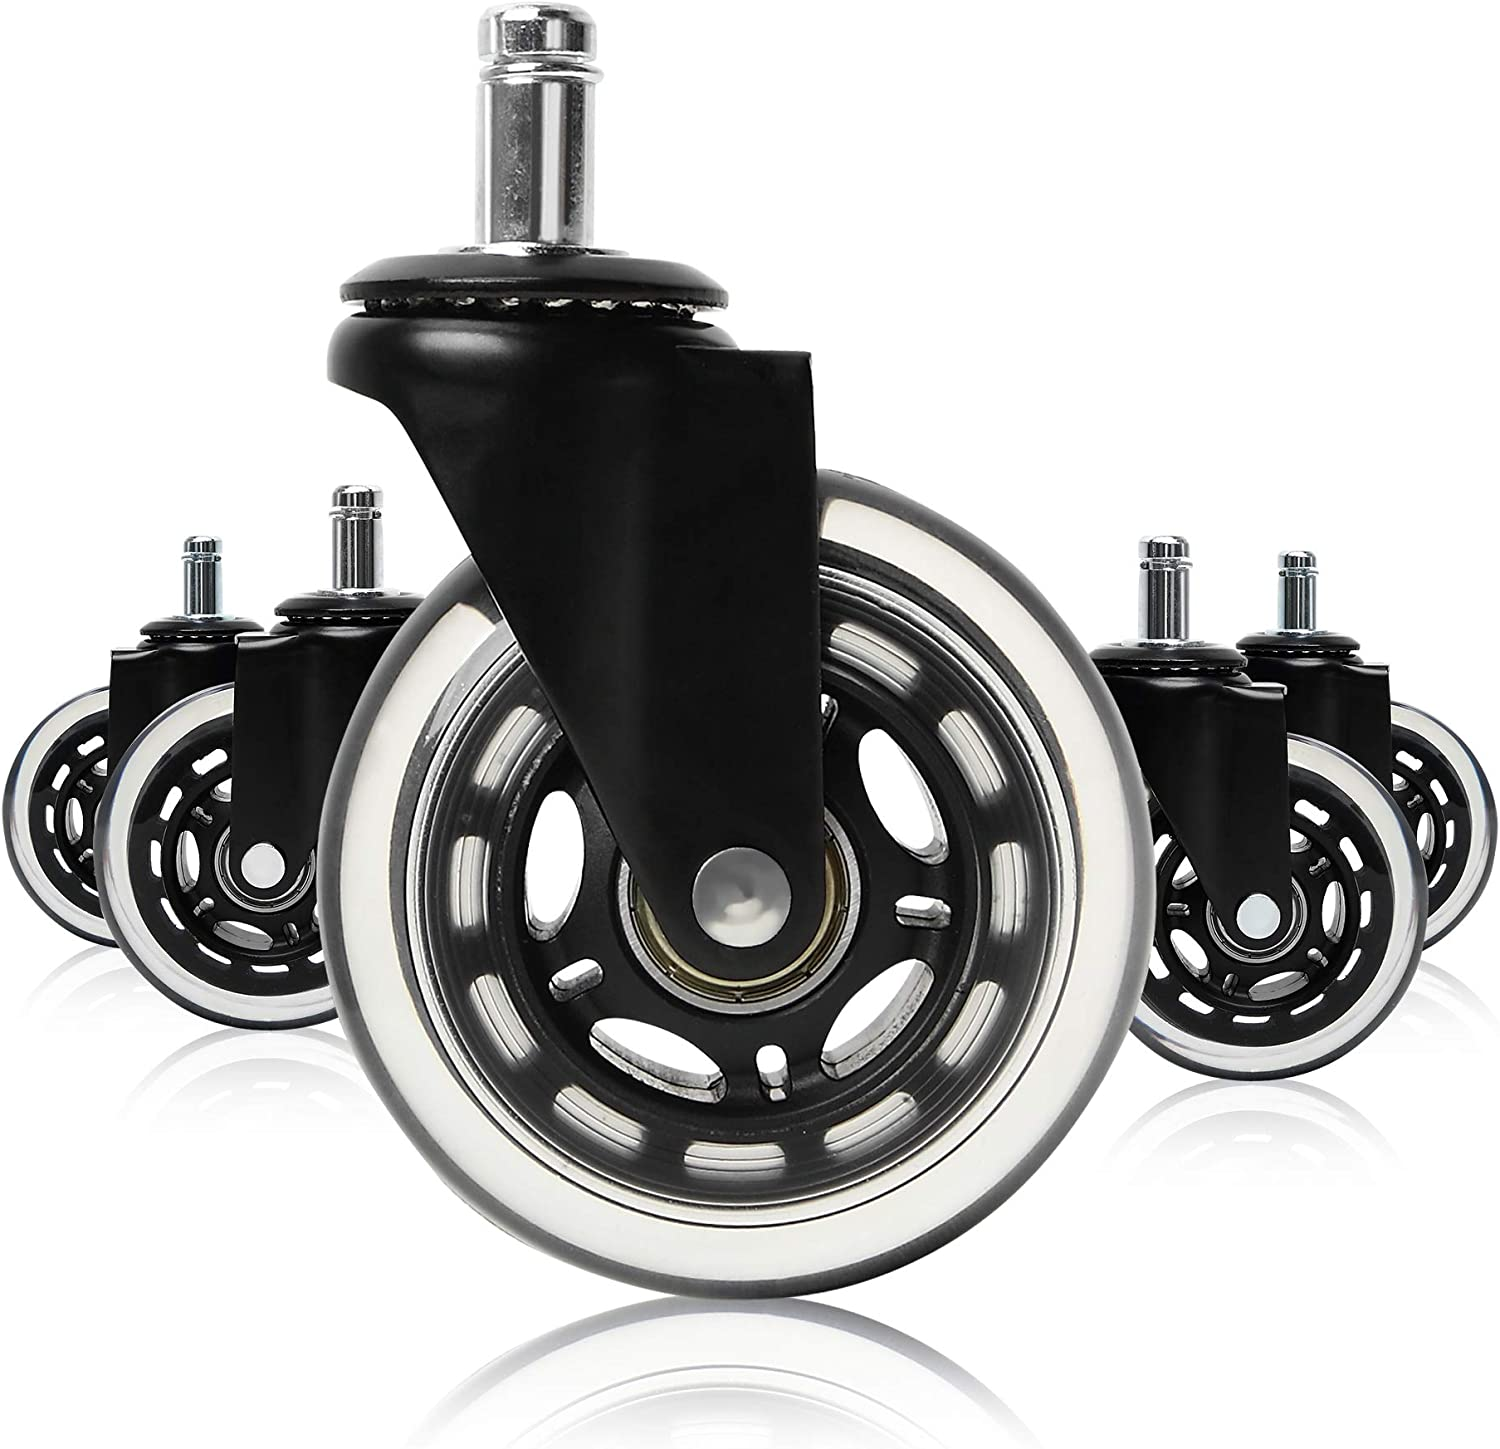 MOPHOTO Office Chair Wheels Black Replacement Rubber Chair casters for Hardwood Floors and Carpet, Set of 5, Replace Chair mats - Universal fit: Automotive